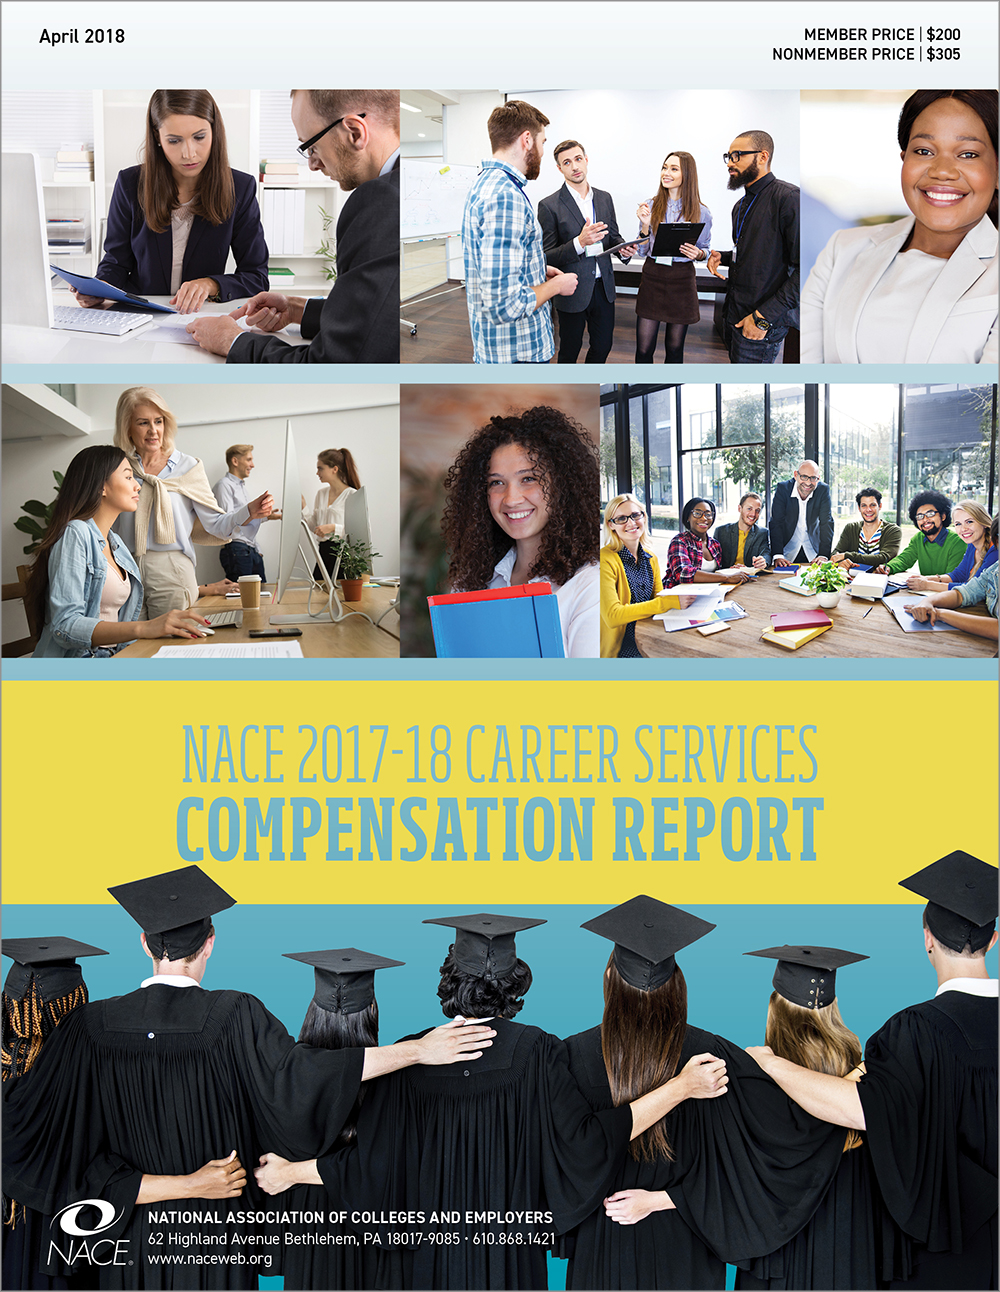 CAREER SERVICES COMPENSATION BENCHMARK SURVEY